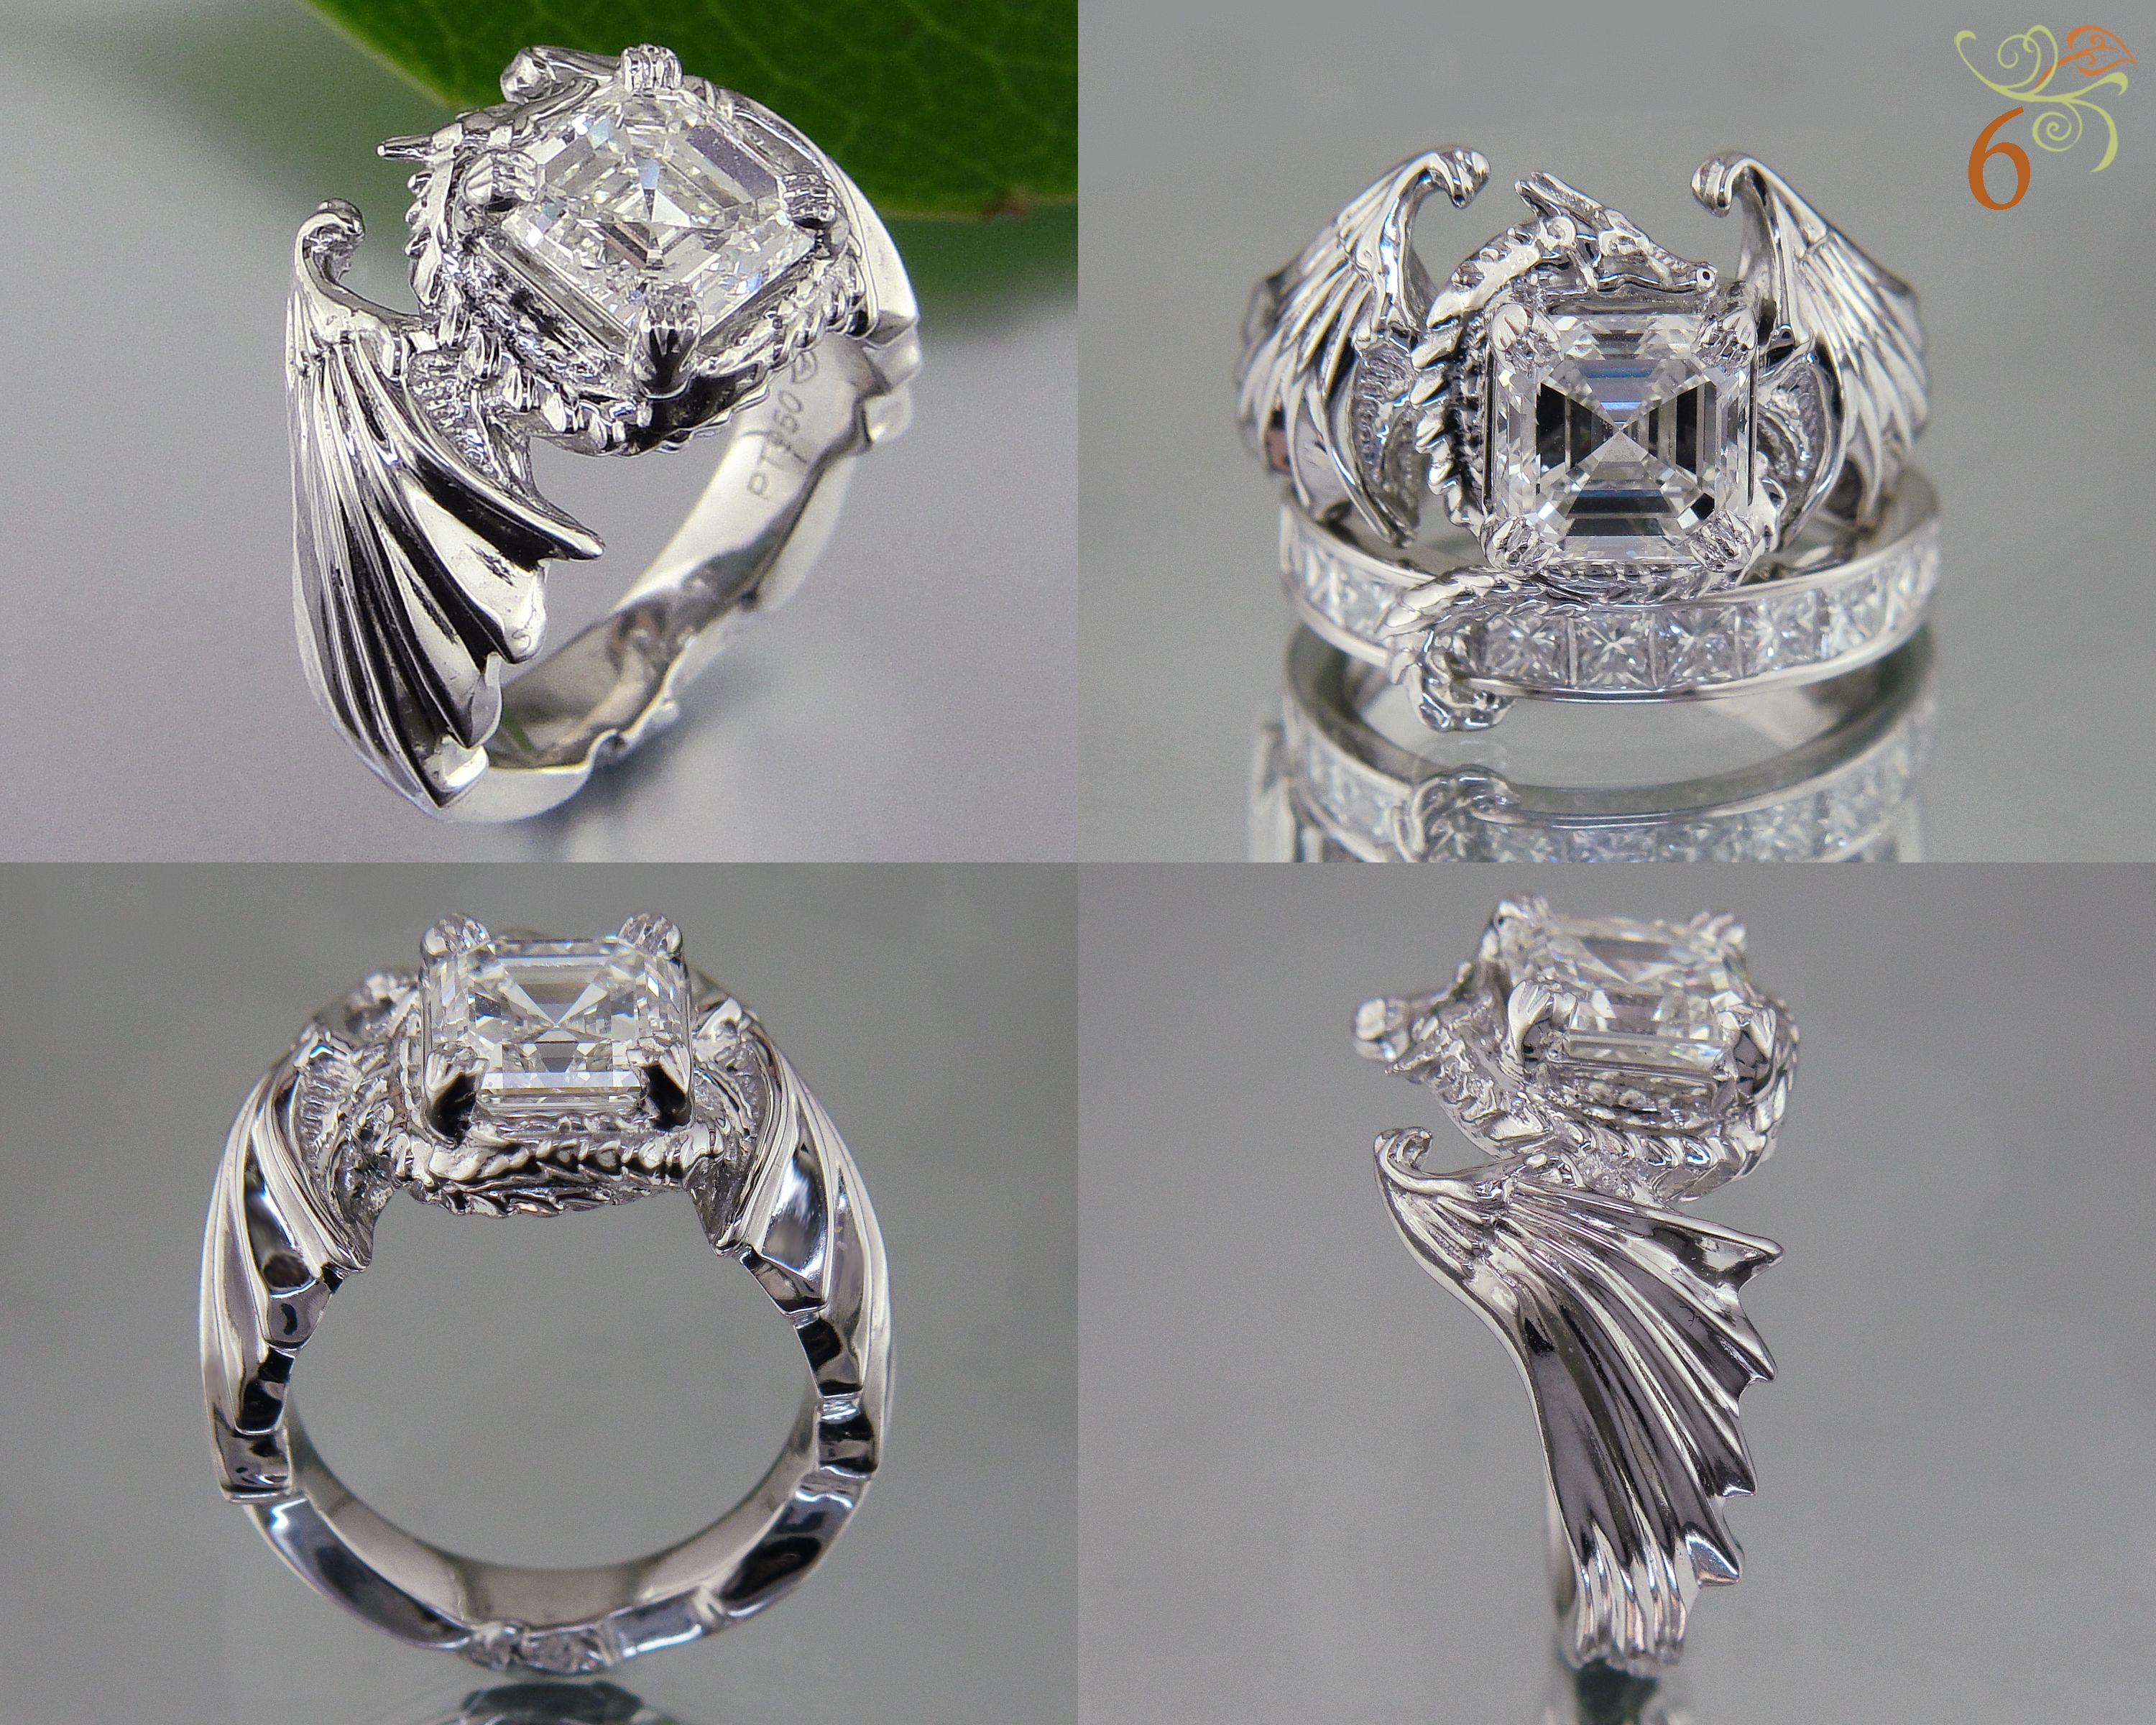 Best 20 Dragon ring ideas on Pinterest—no signup required